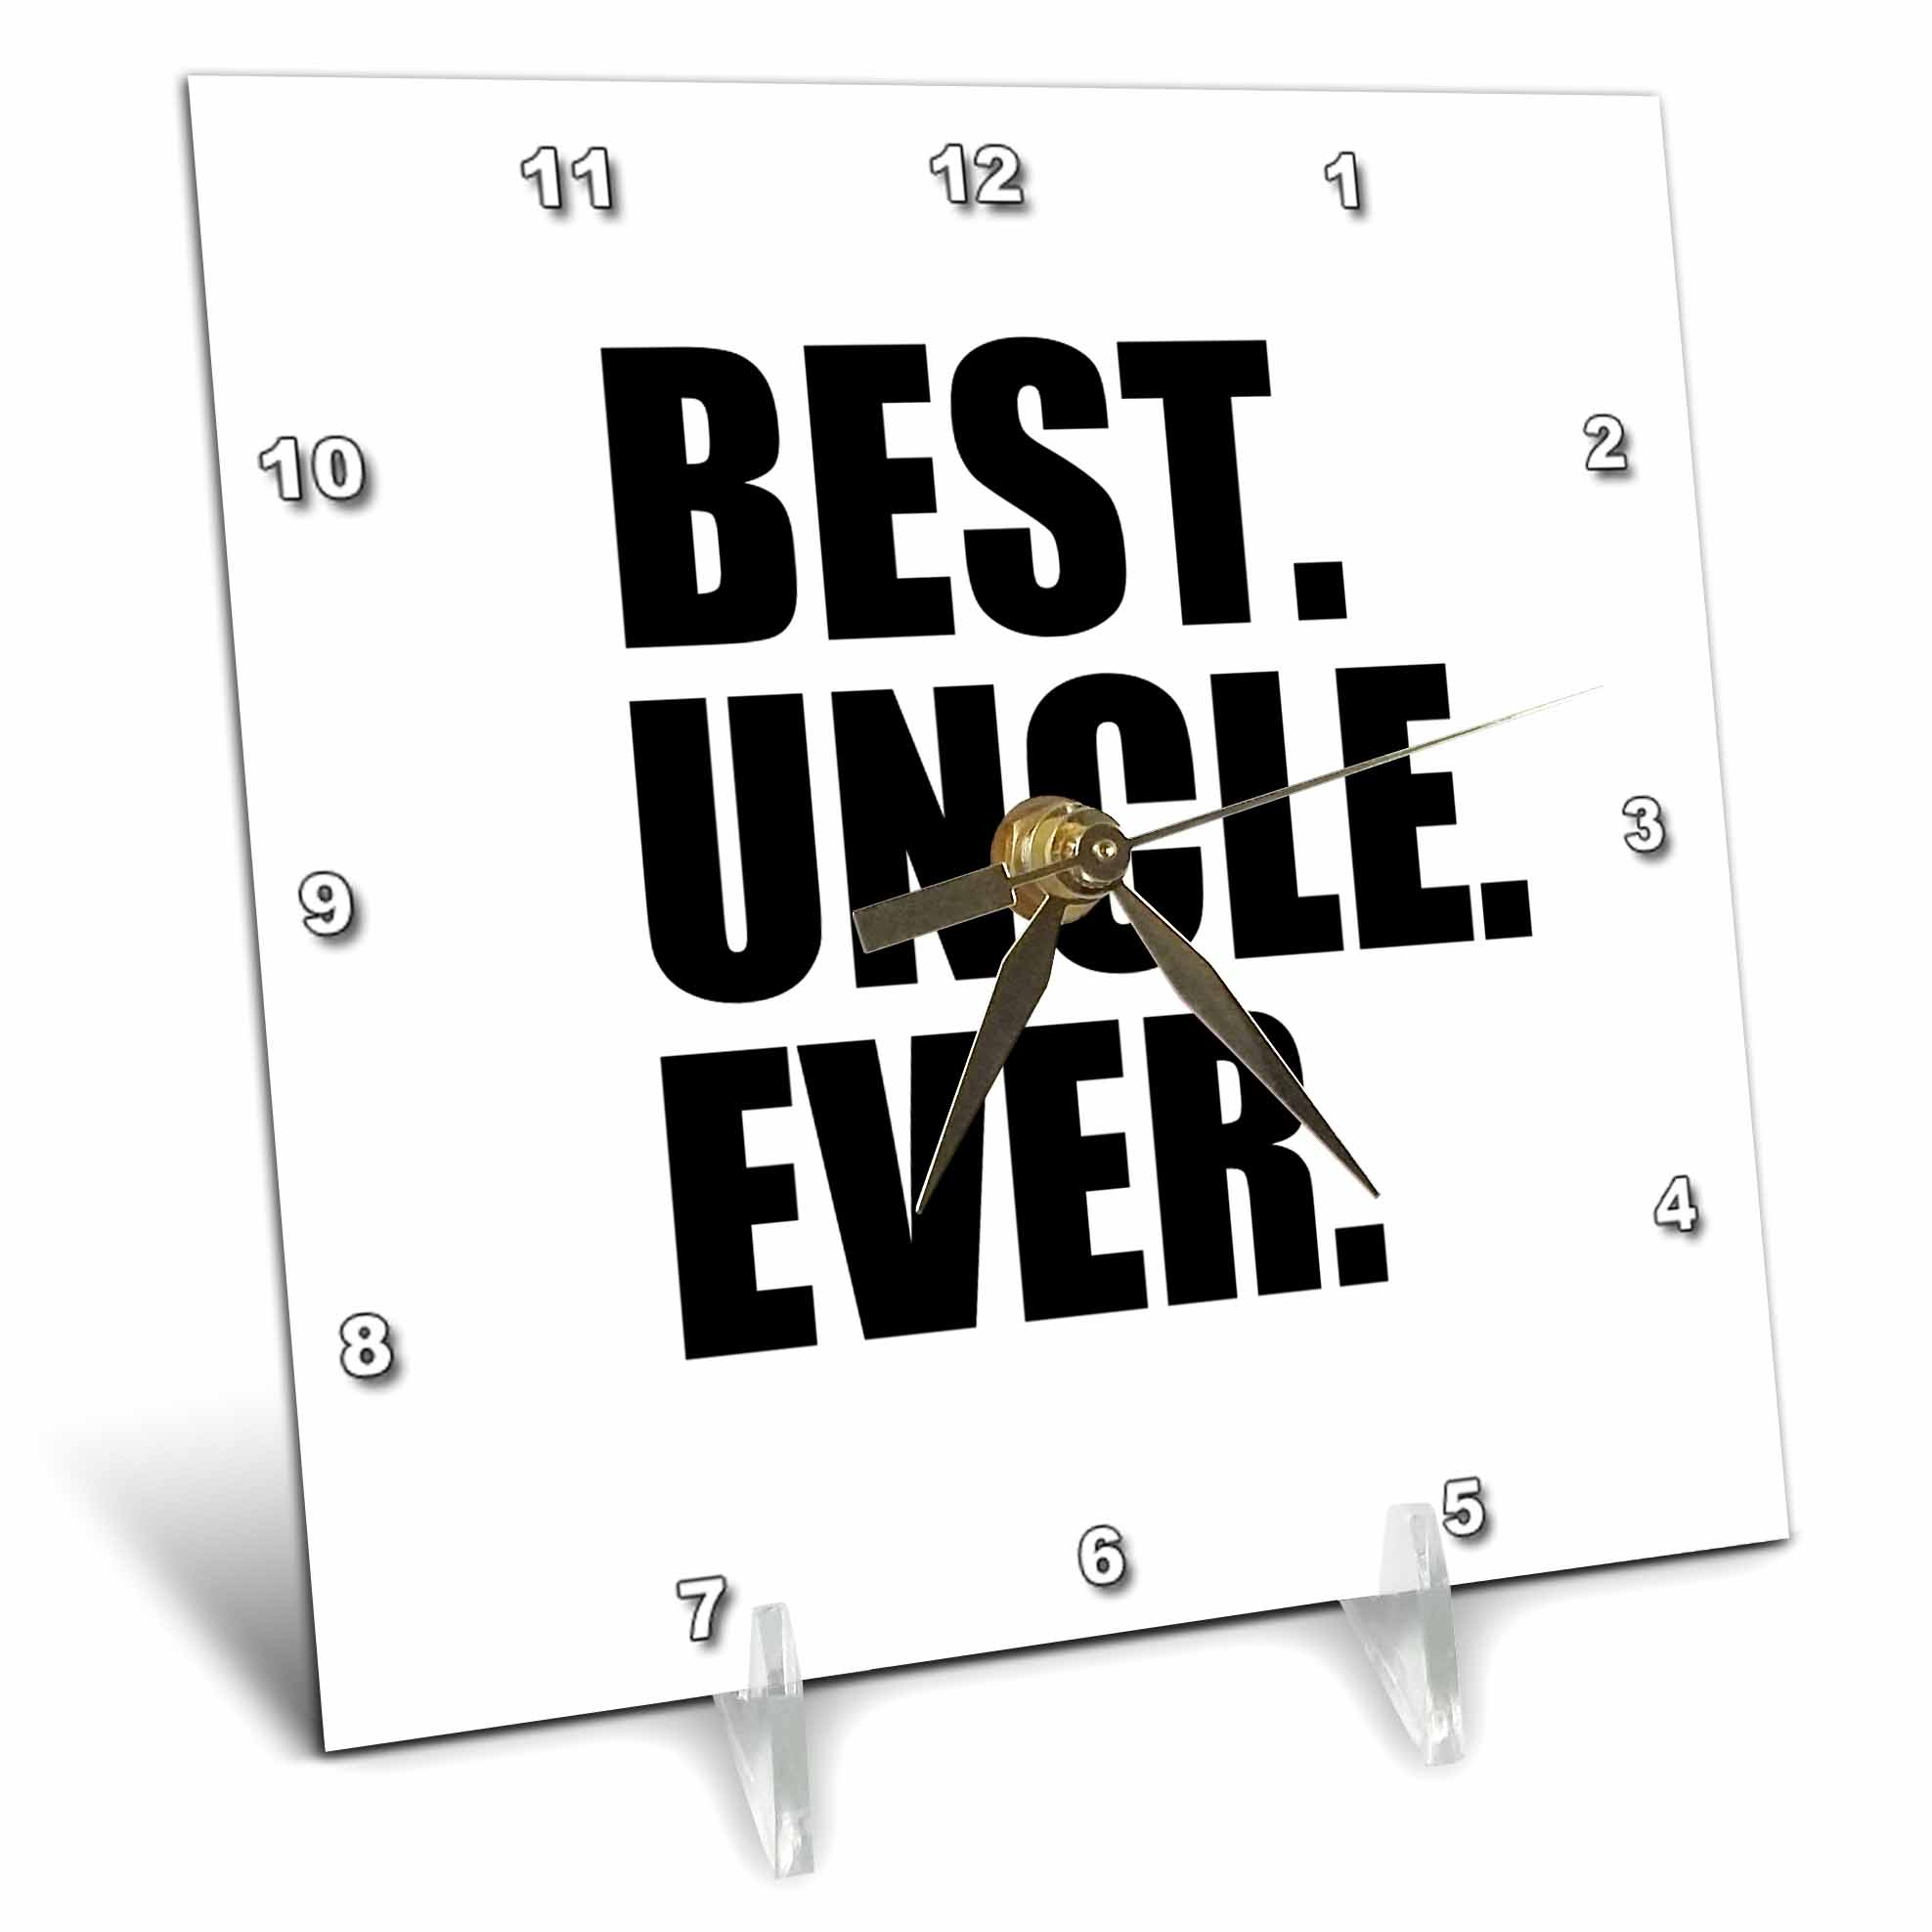 3dRose Best Uncle Ever Family gifts for relatives and honorary uncles and great uncles black text, Desk Clock, 6 by... by 3dRose